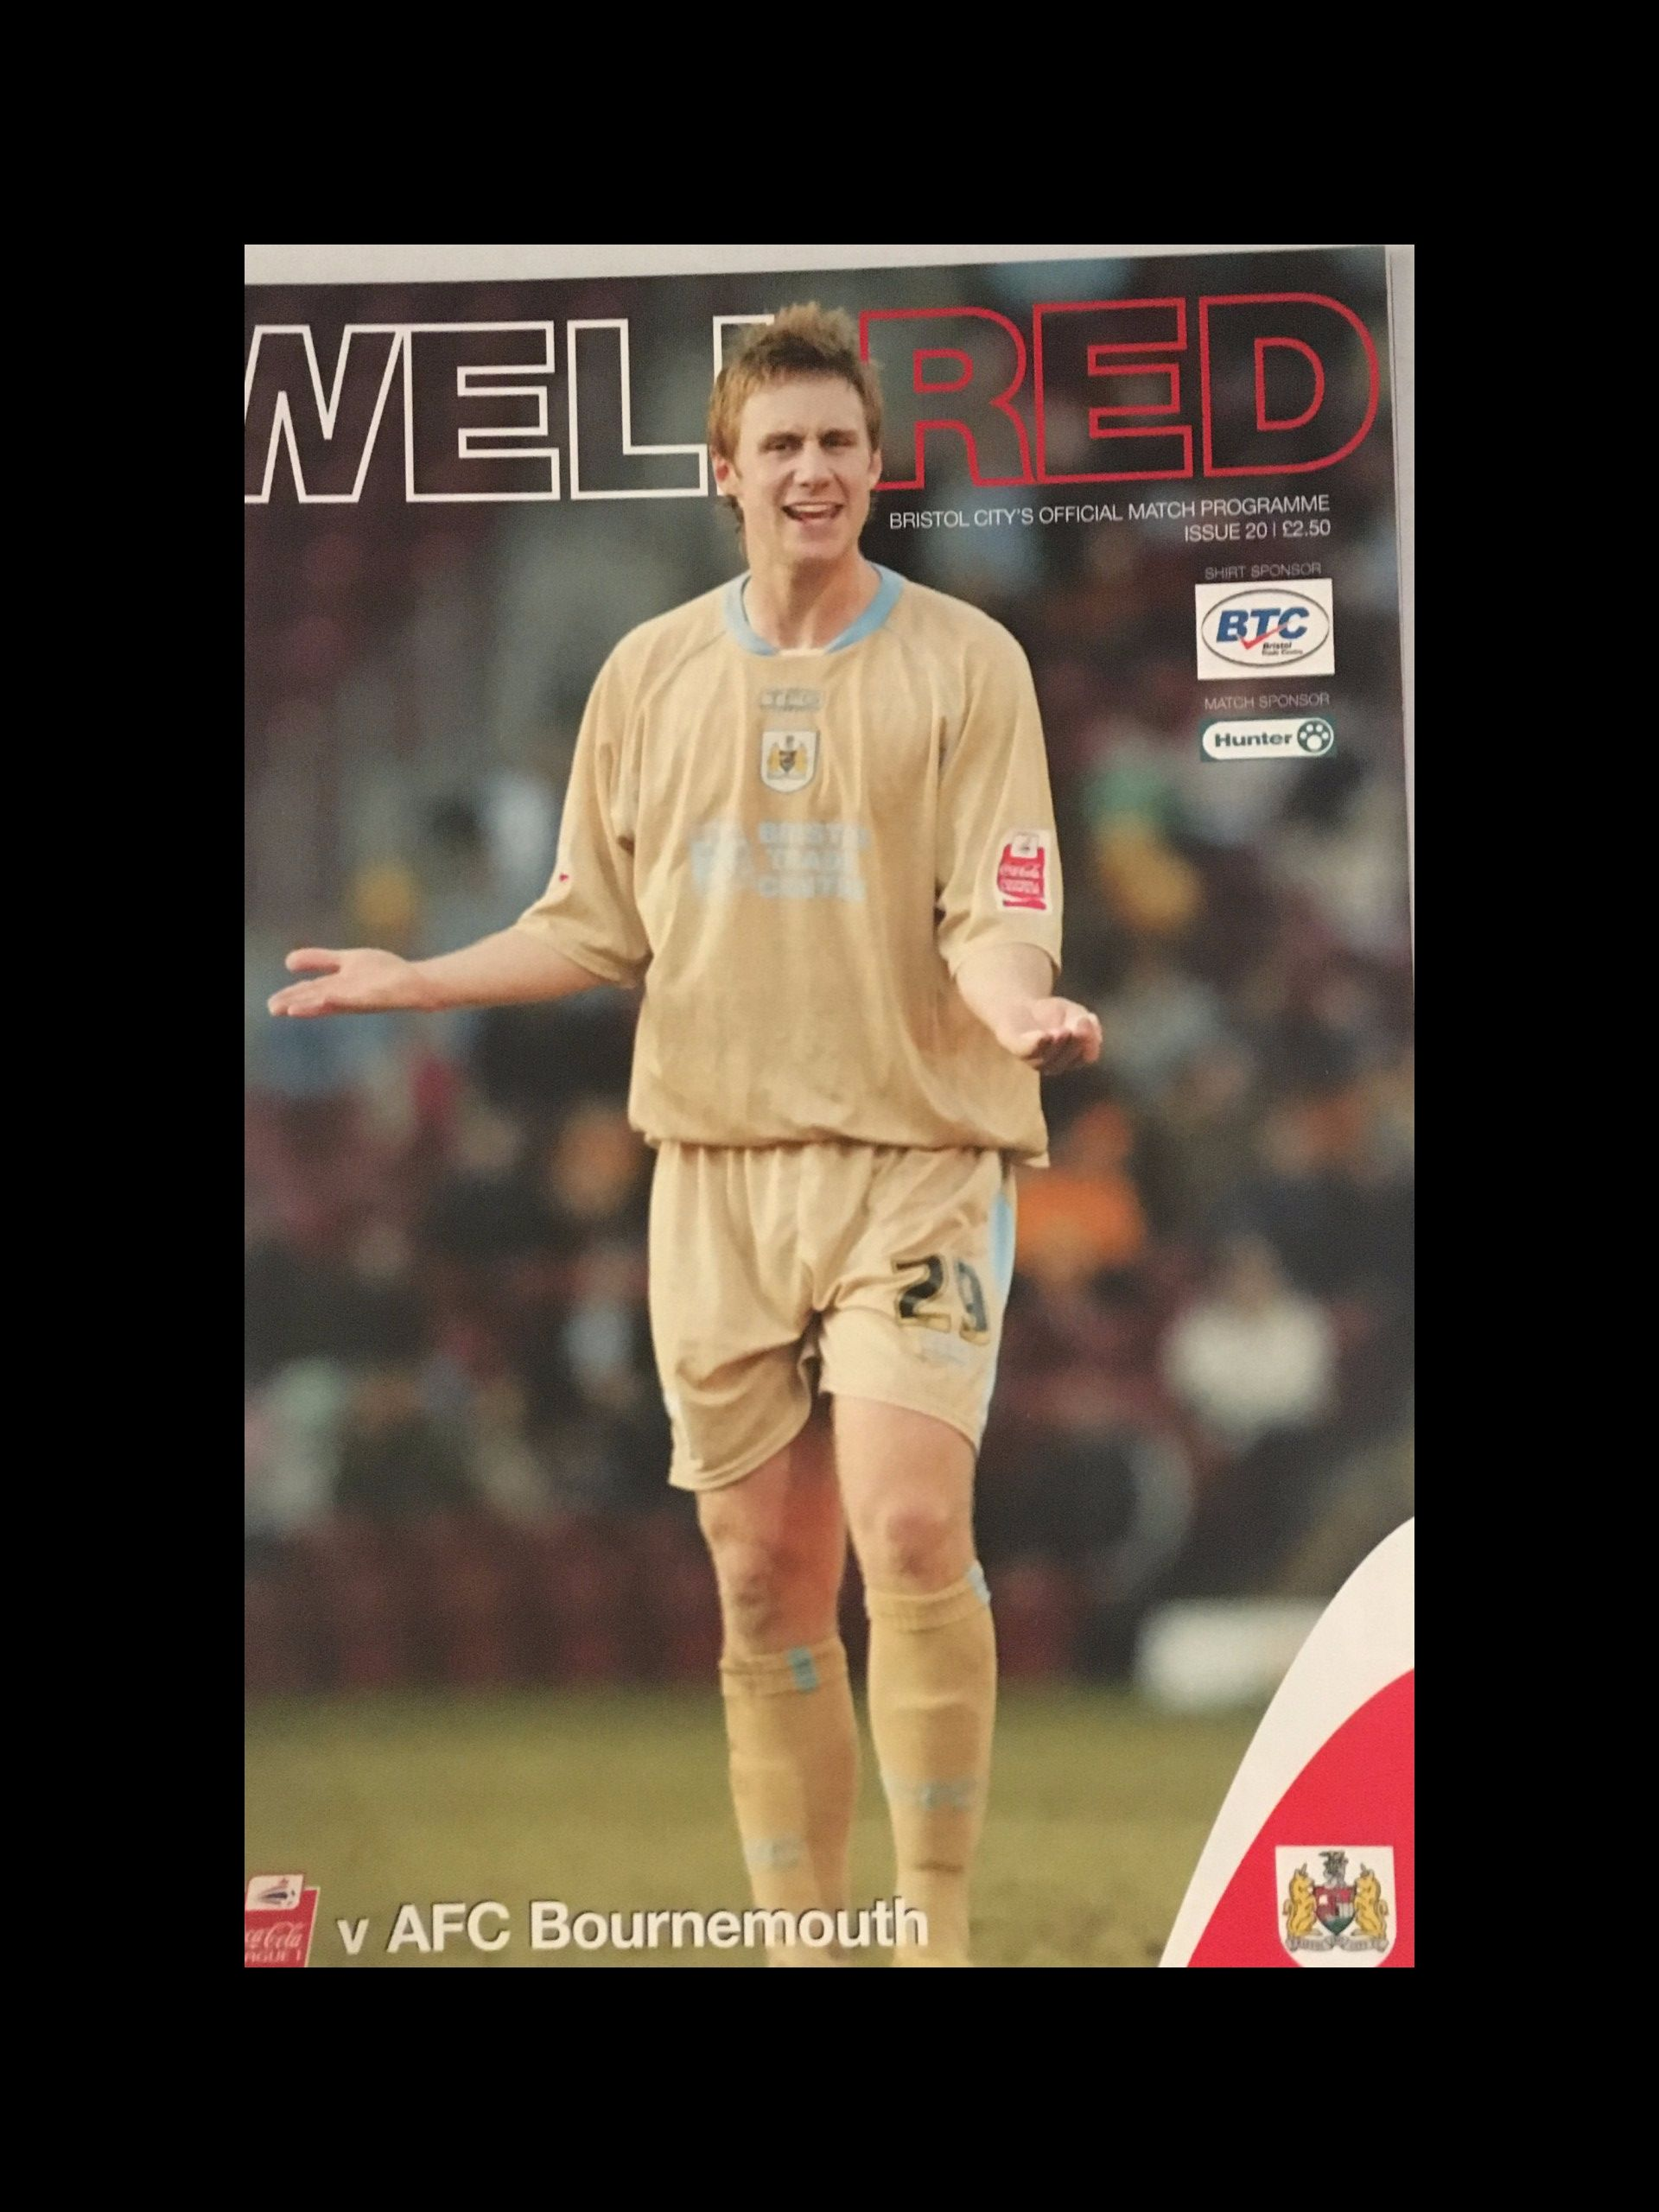 Bristol City v AFC Bournemouth 25-02-2006 Programme